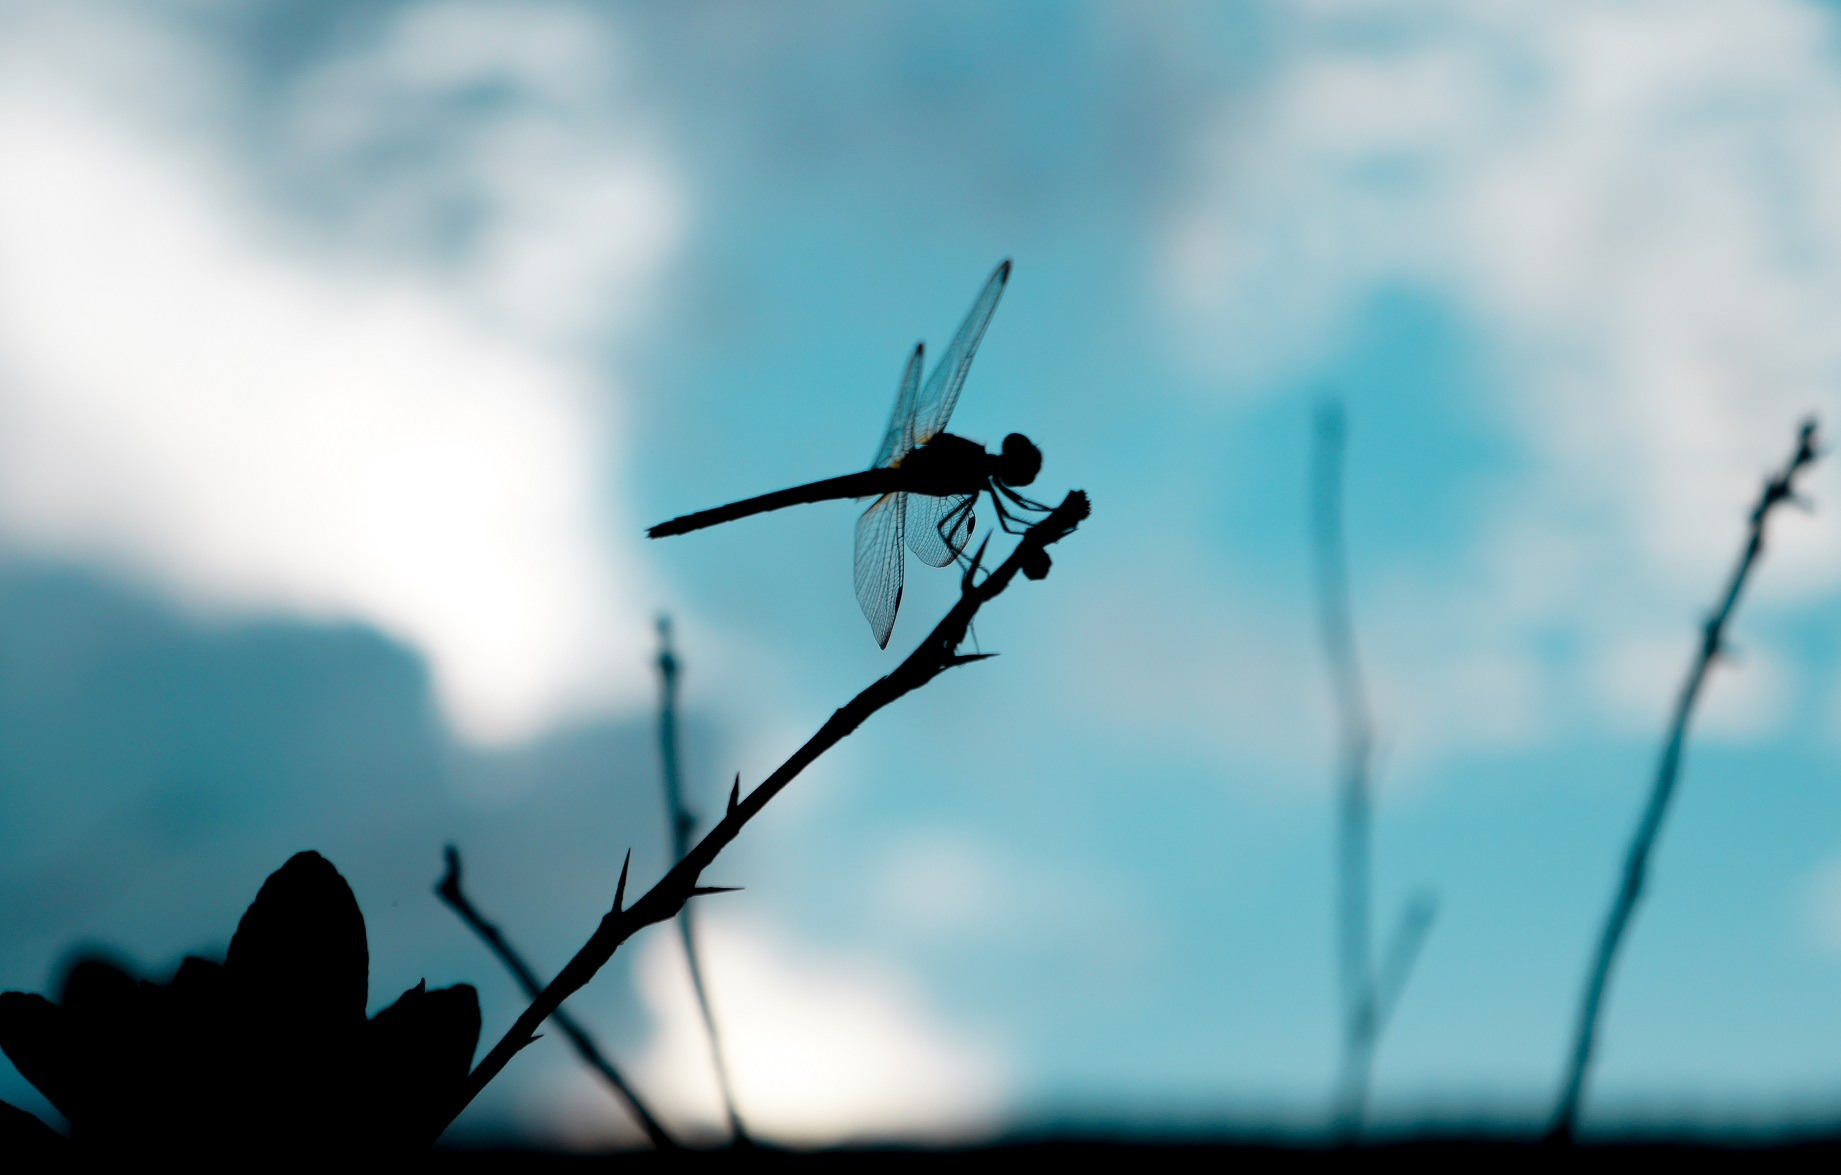 nanopillars insect dragonfly wings